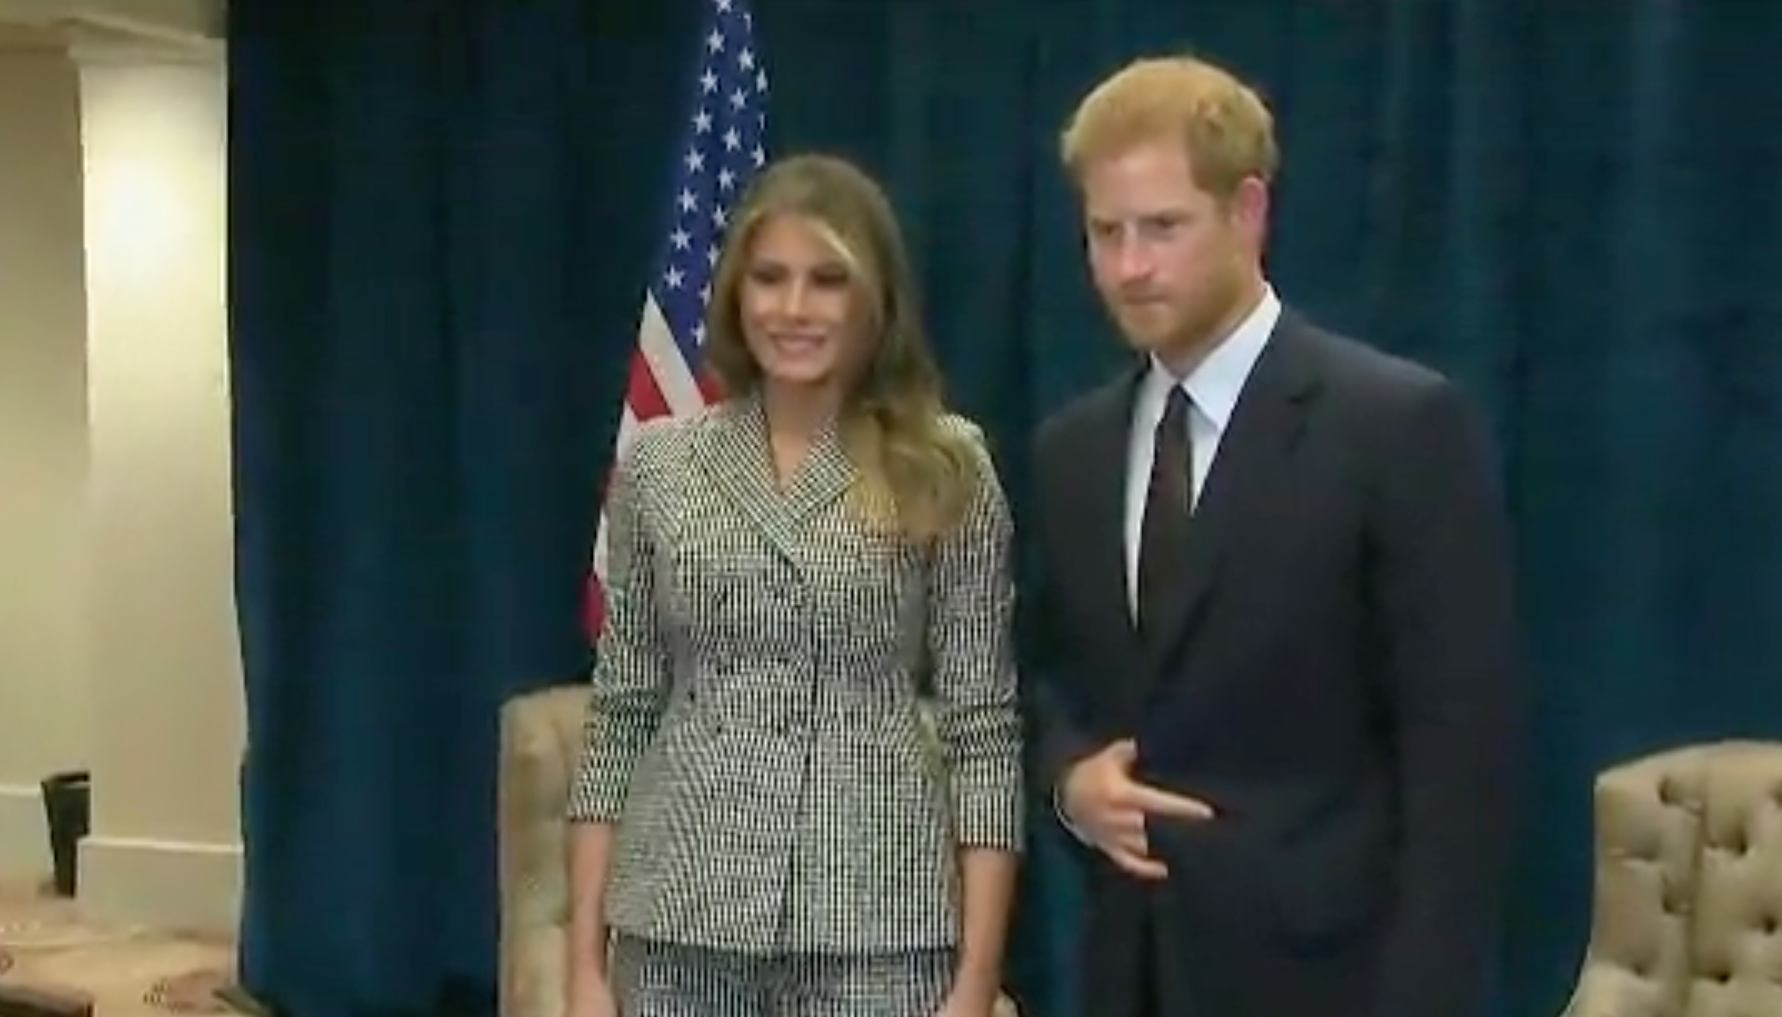 Prince Harry, Melania Trump at Invictus Games opening/ Photo Credit: CNN Newsource